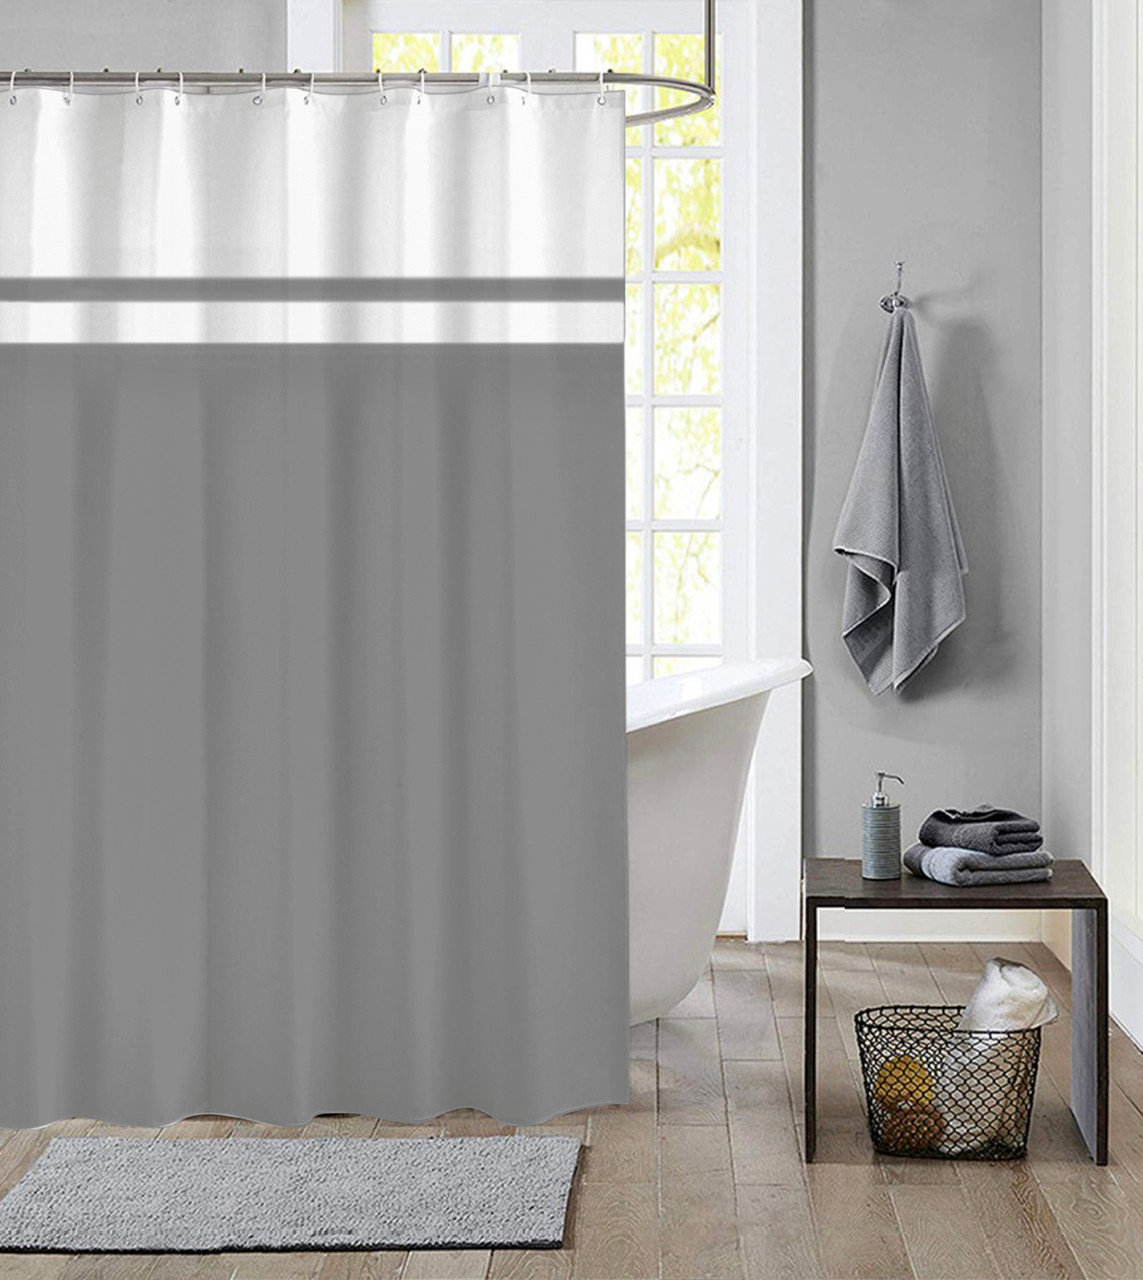 extra long shower curtain 72 x 78 inch dutch house polyester fabric simply gray